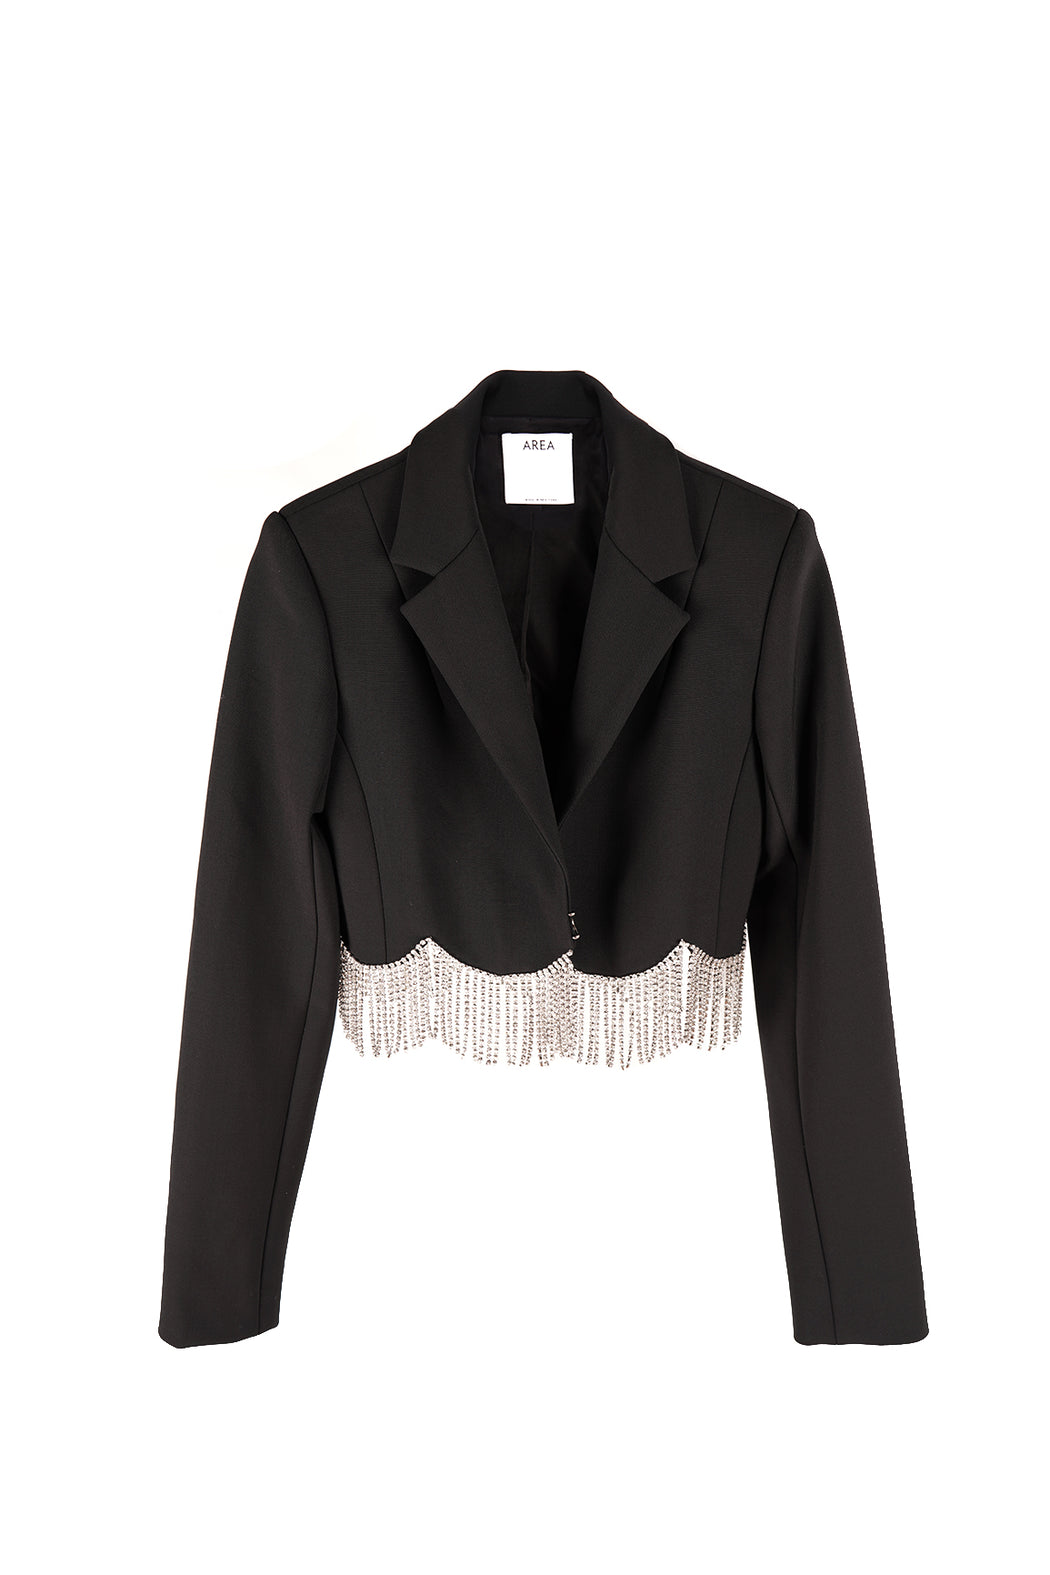 Cropped Blazer with Scalloped Crystal Hem - Black